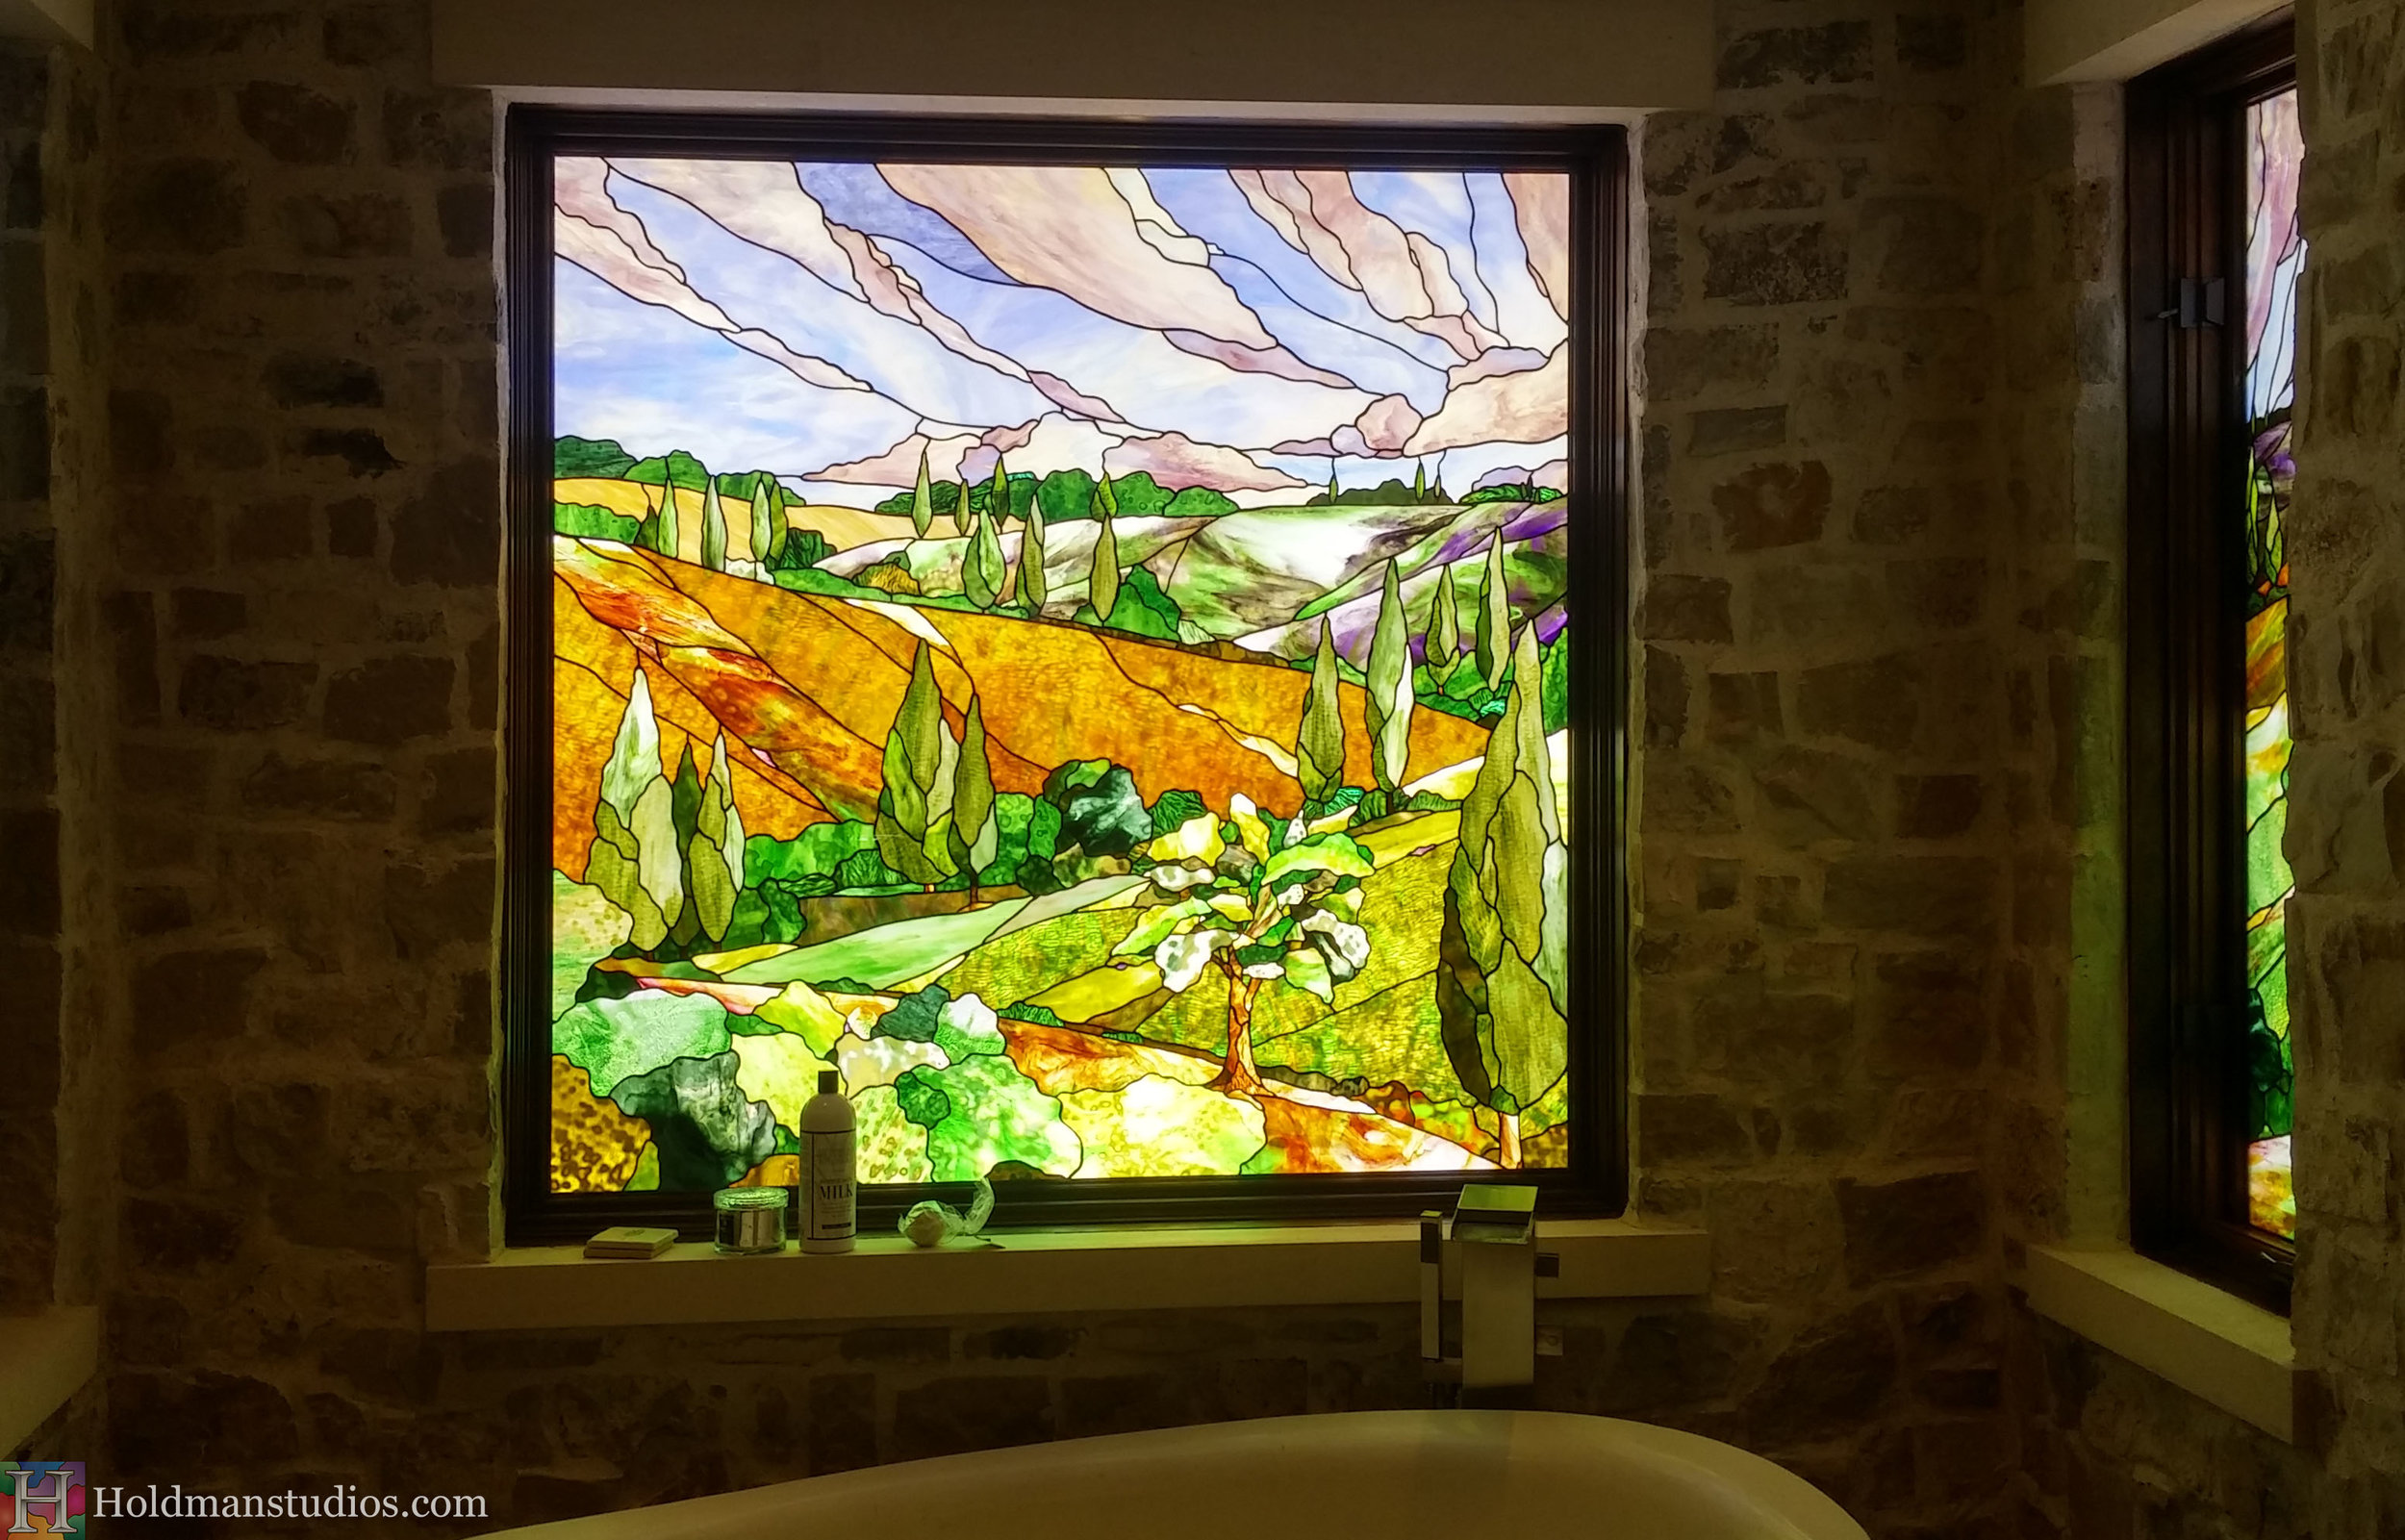 Holdman-Studios-Stained-Glass-Bathroom-Window-Landscapes-Trees-Bushes-Hills-Sky-Clouds-.jpg